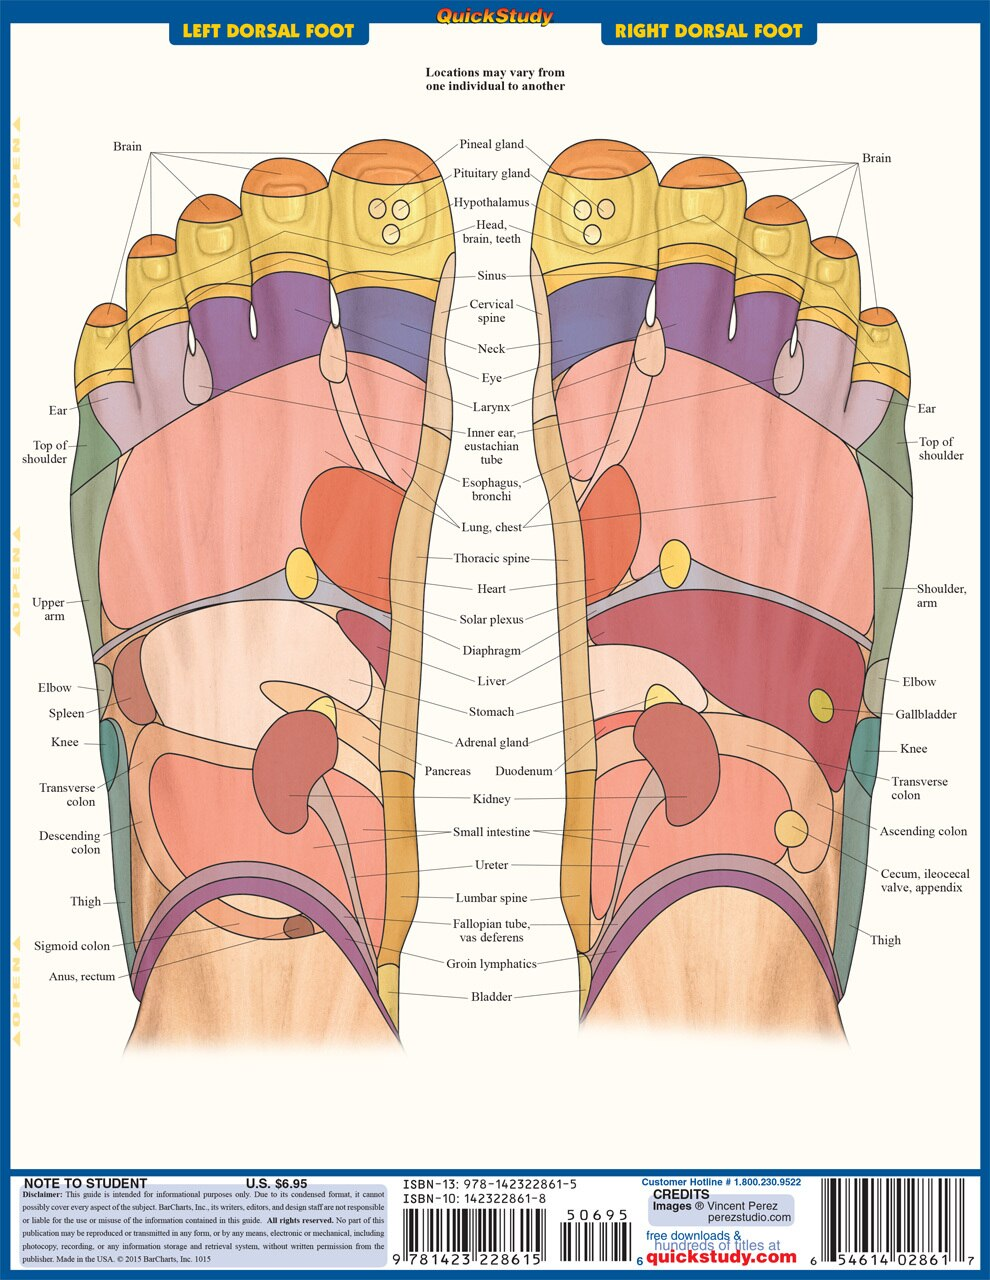 Quick Study QuickStudy Reflexology Laminated Study Guide BarCharts Publishing Medical Reference Guide Back  Image